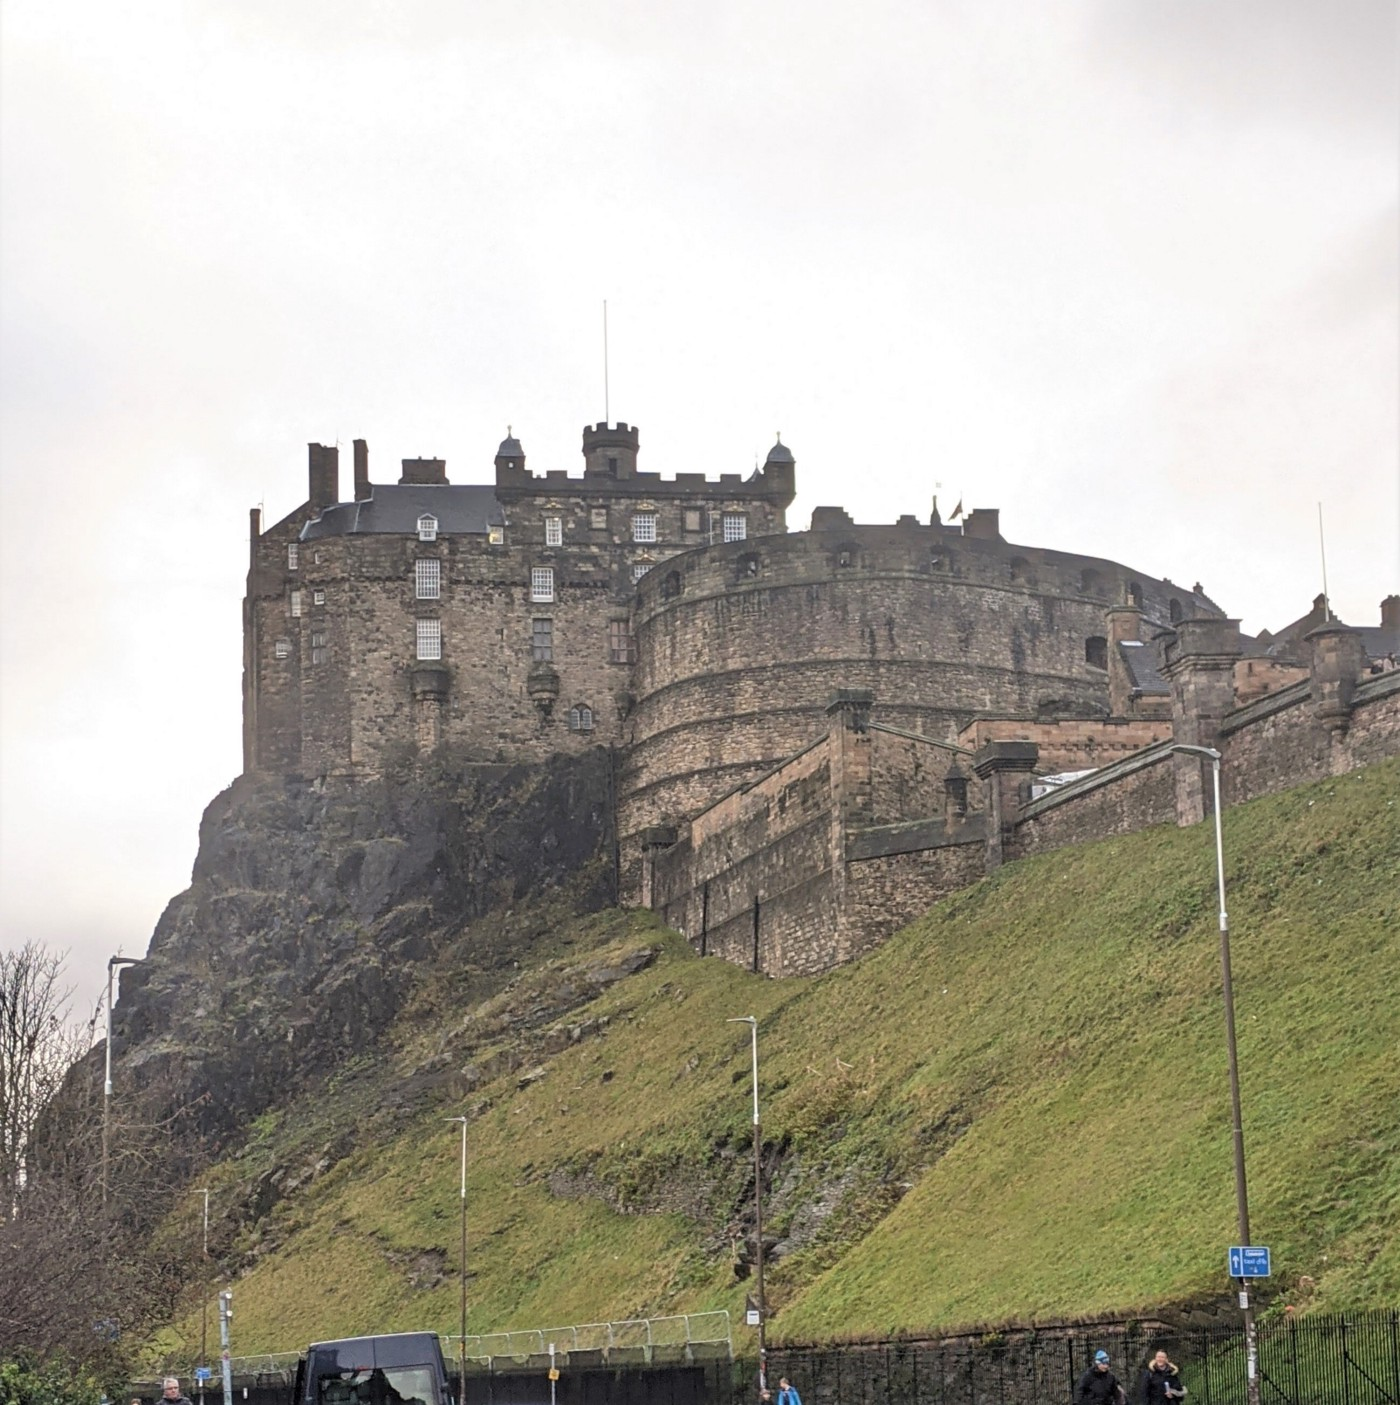 The Queen's castle in Edinburgh sits above a green hill